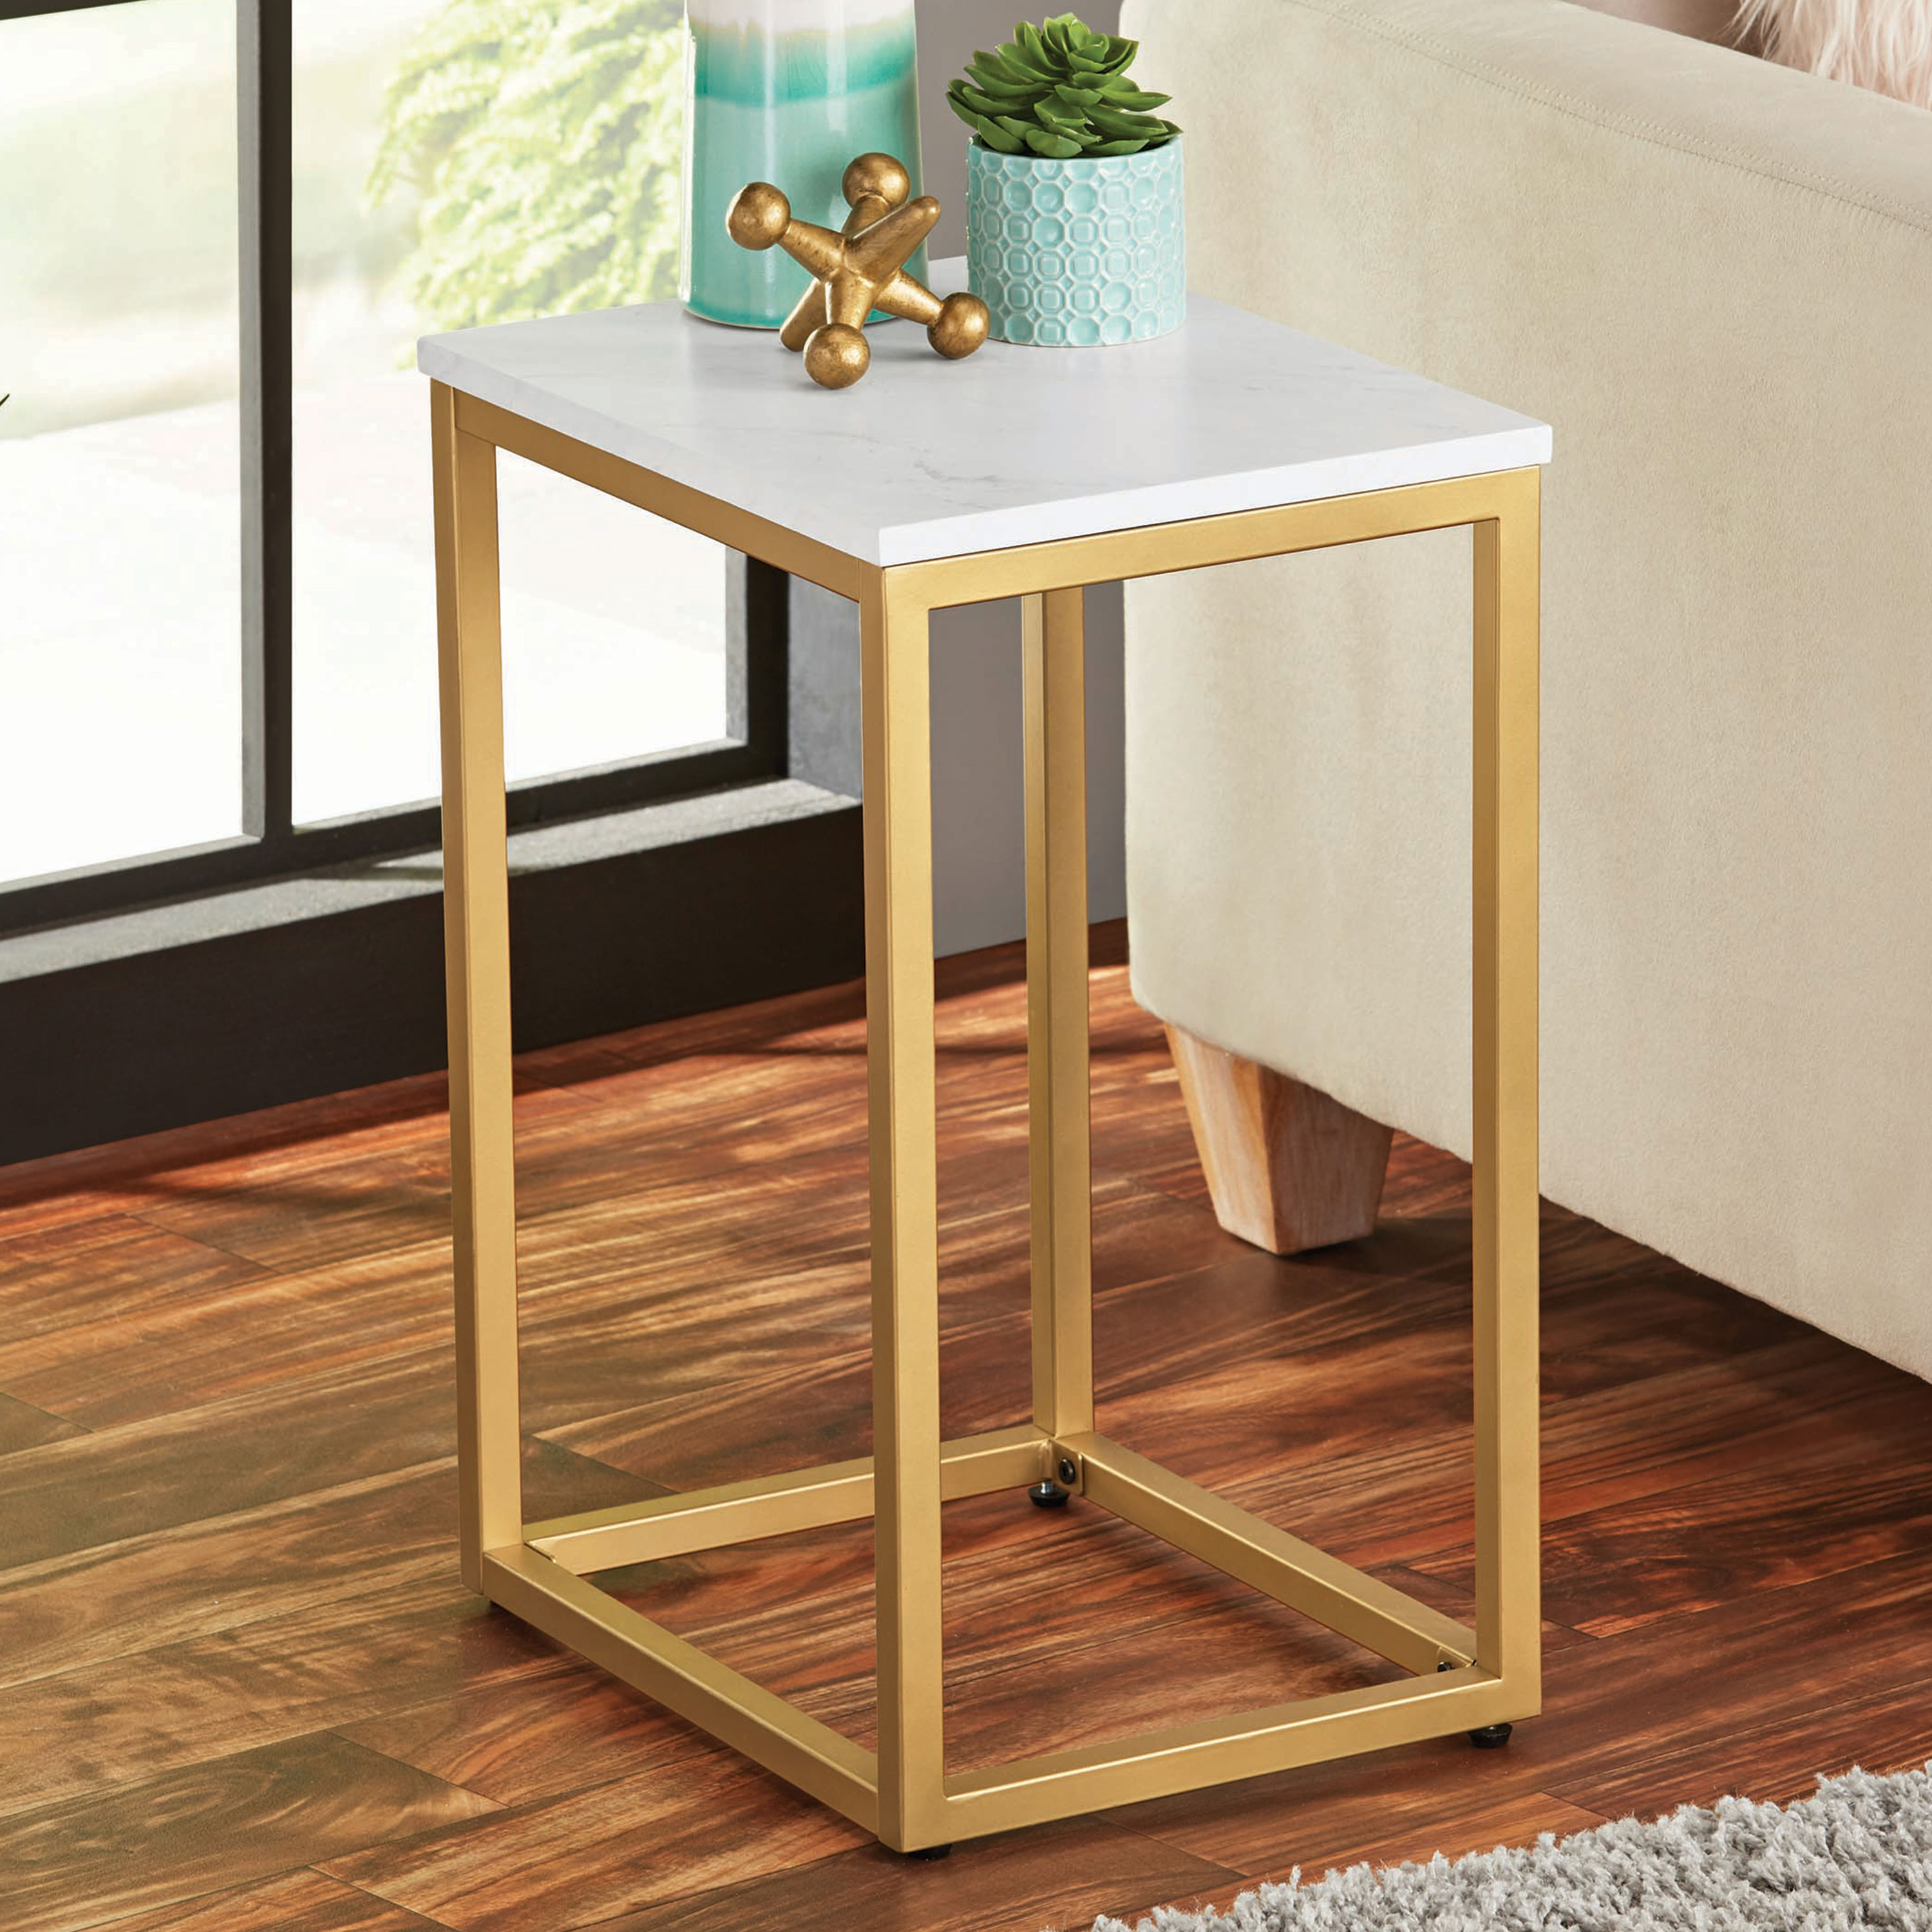 mainstays end table with space saving design and durable metal frame accent under multiple finishes tiny lamp small occasional drawer skinny side target furniture coffee circle